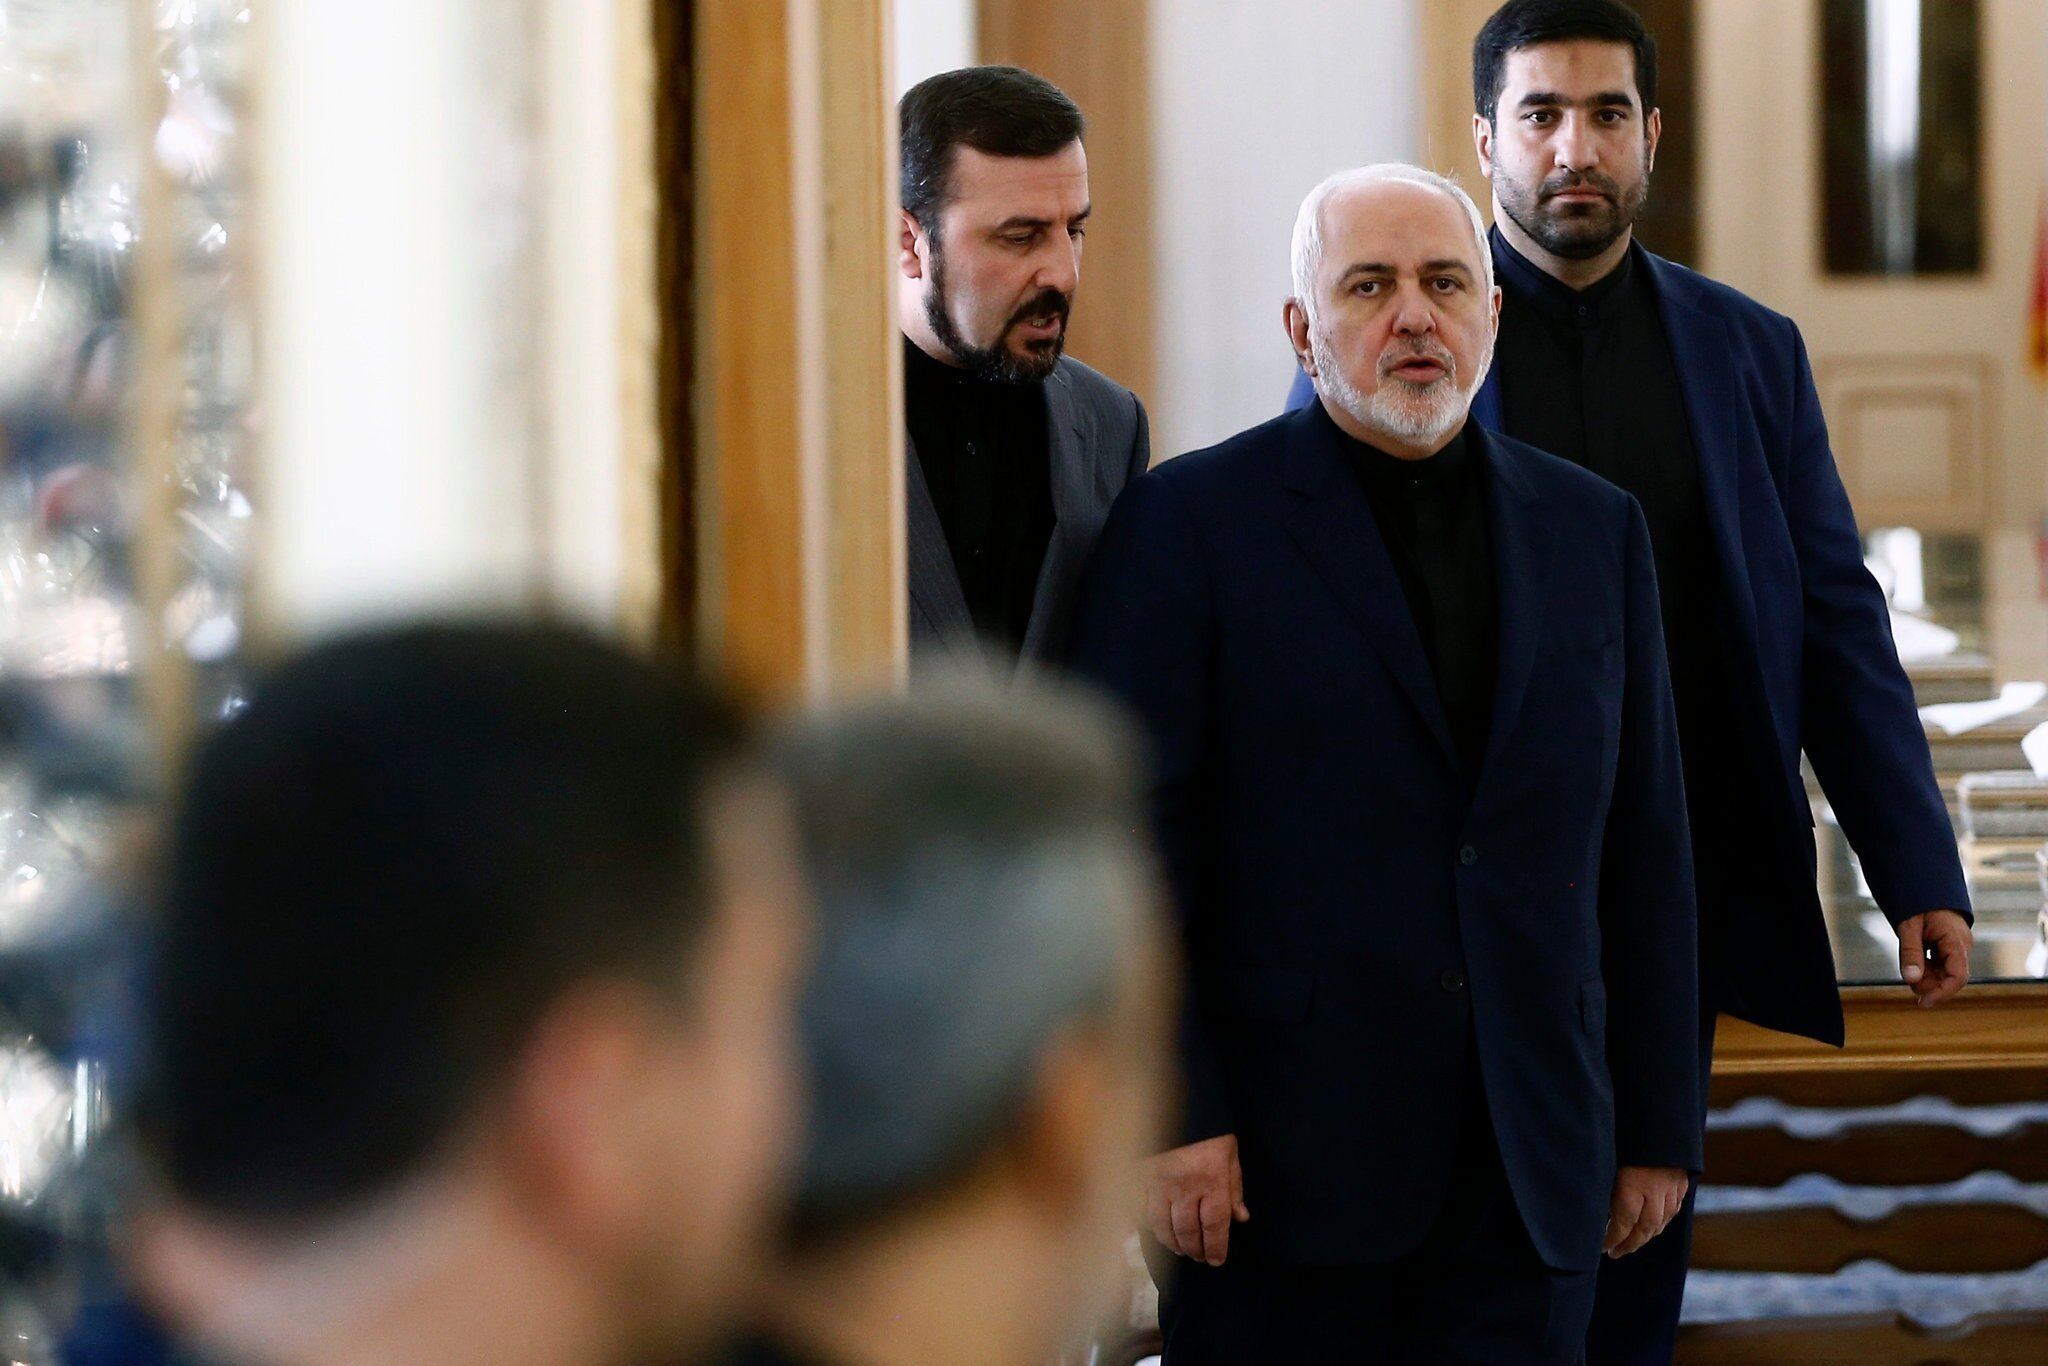 """Foreign Minister Mohammad Javad Zarif, center, told CNN that Iran """"won't blink to defend our territory."""" Credit Abedin Taherkenareh/EPA, via Shutterstock"""